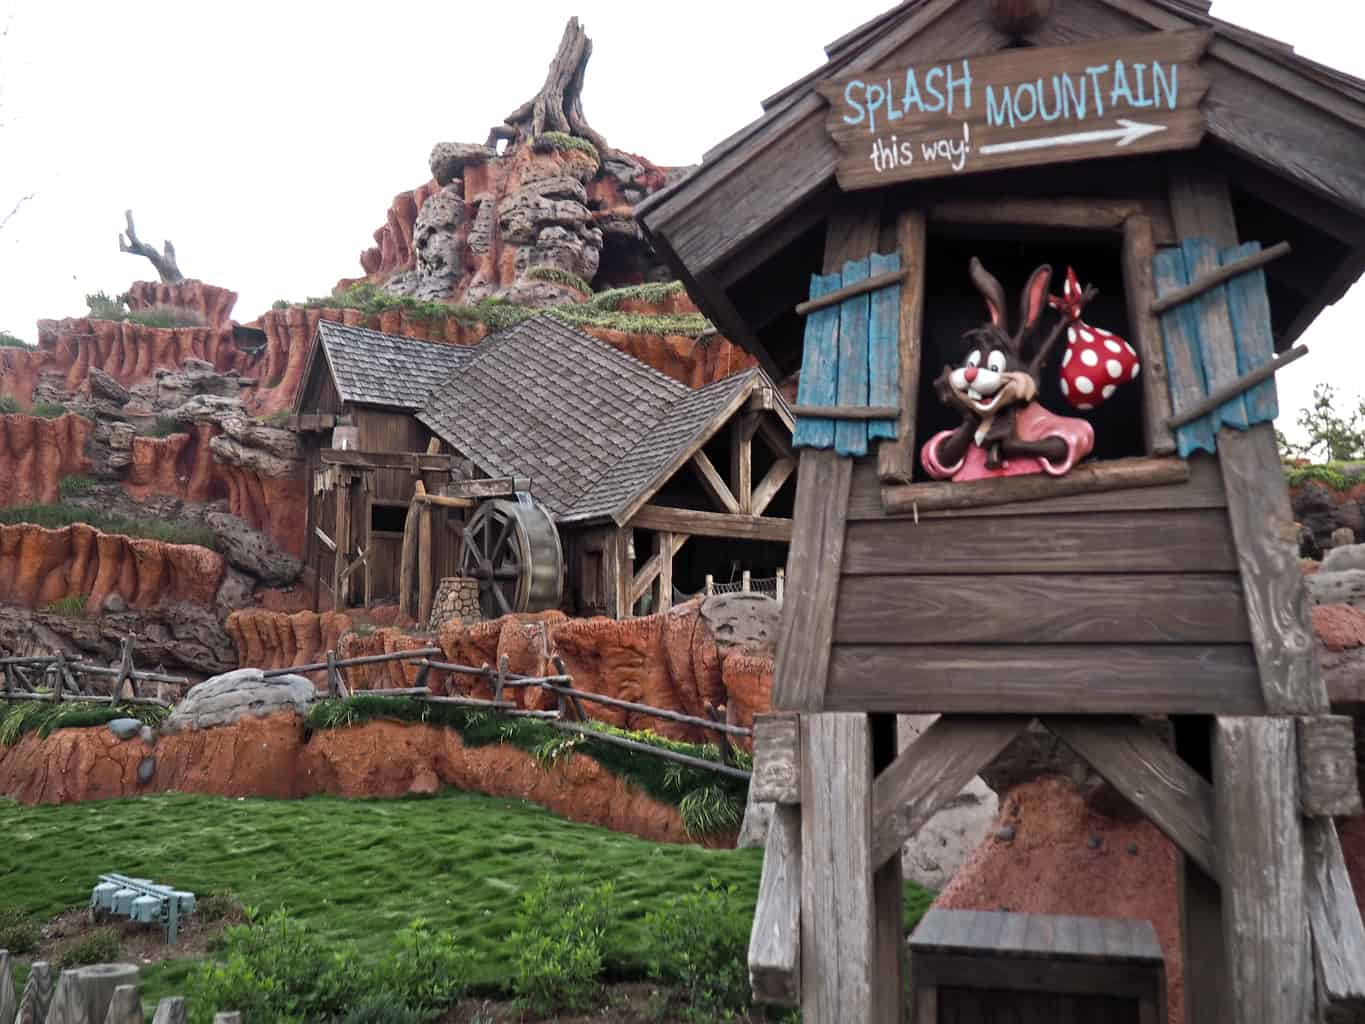 10 Mistakes When Visiting Walt Disney World and What to do Instead